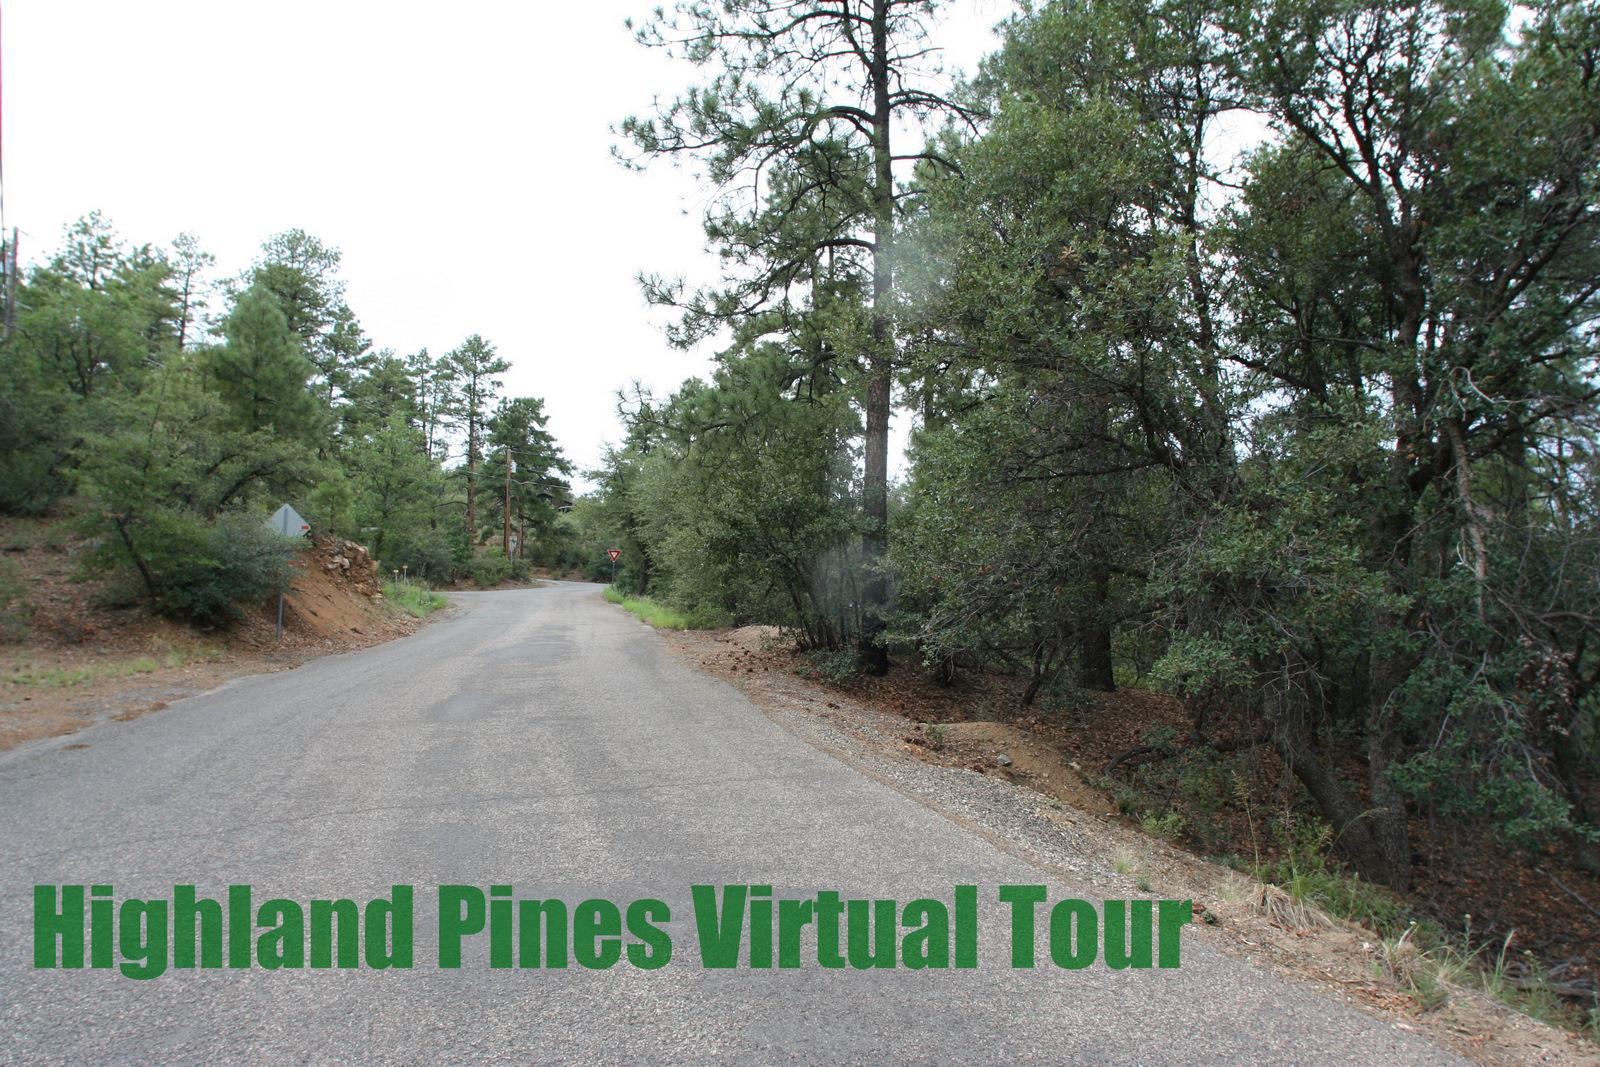 Pictures of Highland Pines Real Estate Prescott AZ Virtual Tour